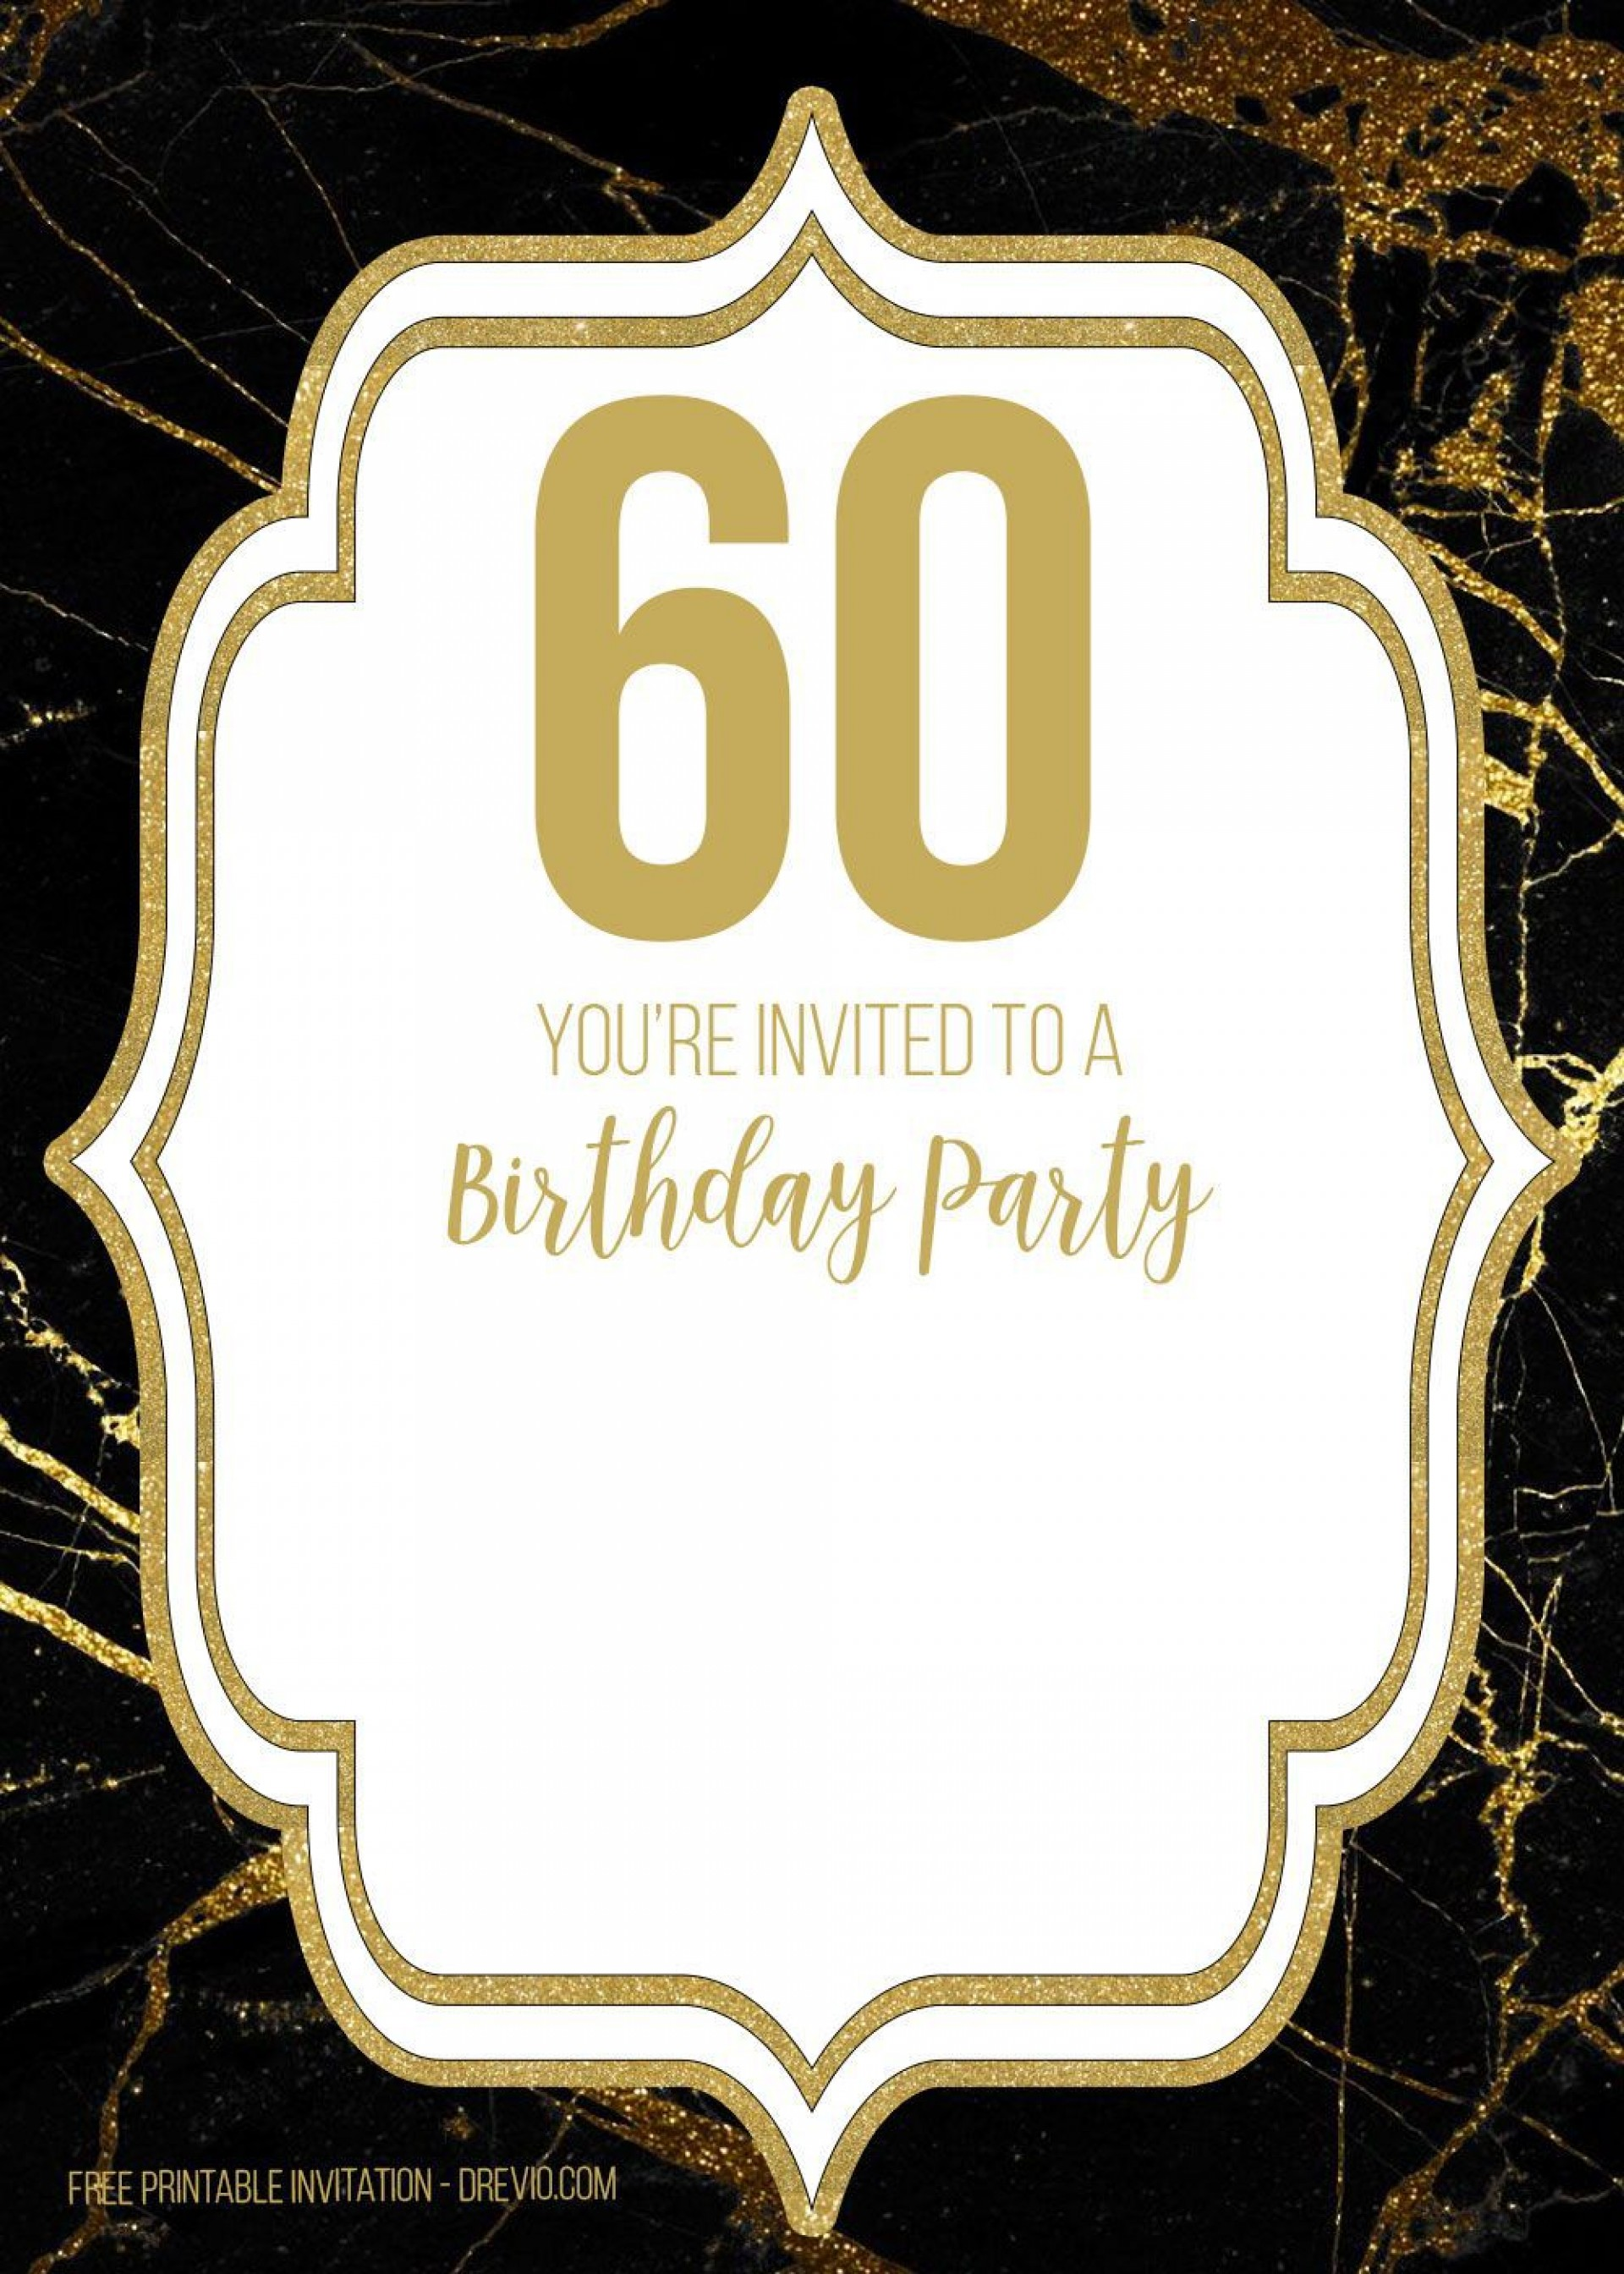 003 Rare 60th Birthday Invitation Template High Definition  Card Free Download1920